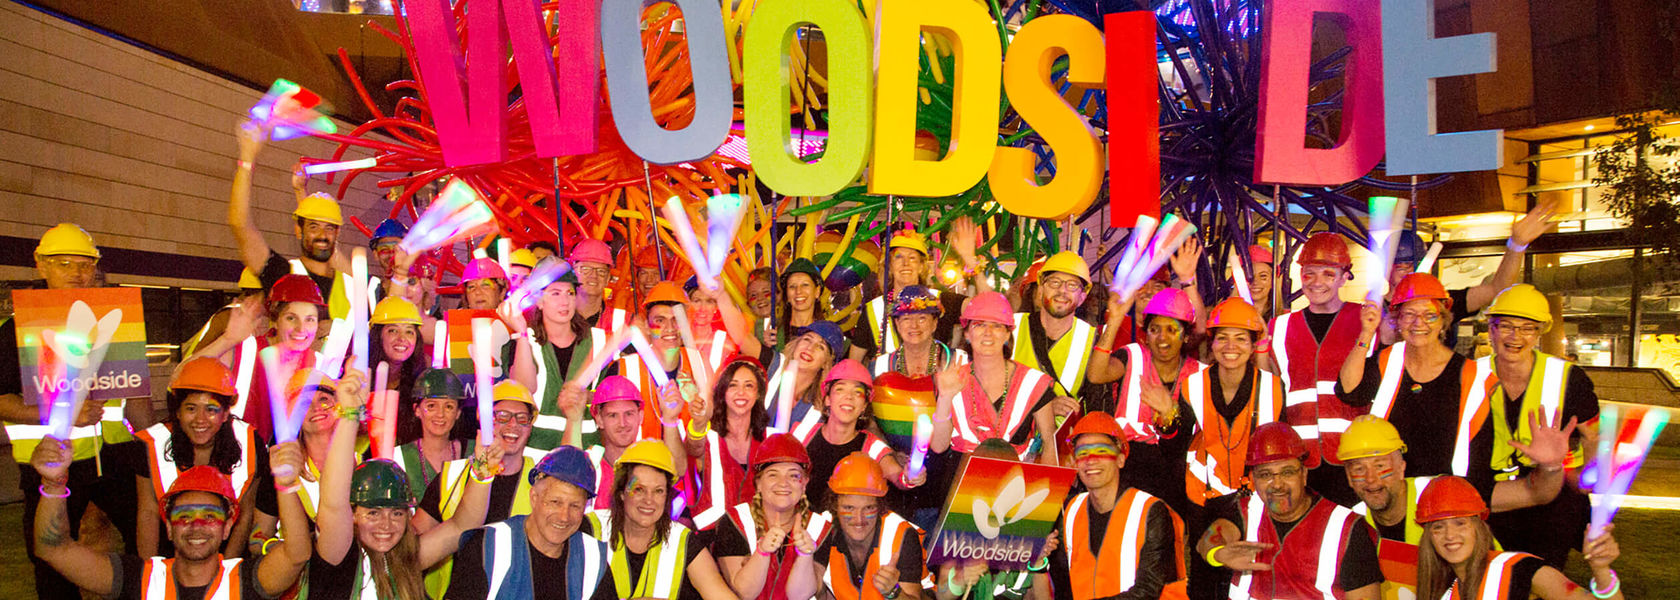 Woodside becomes major supporting sponsor of Perth PrideFest